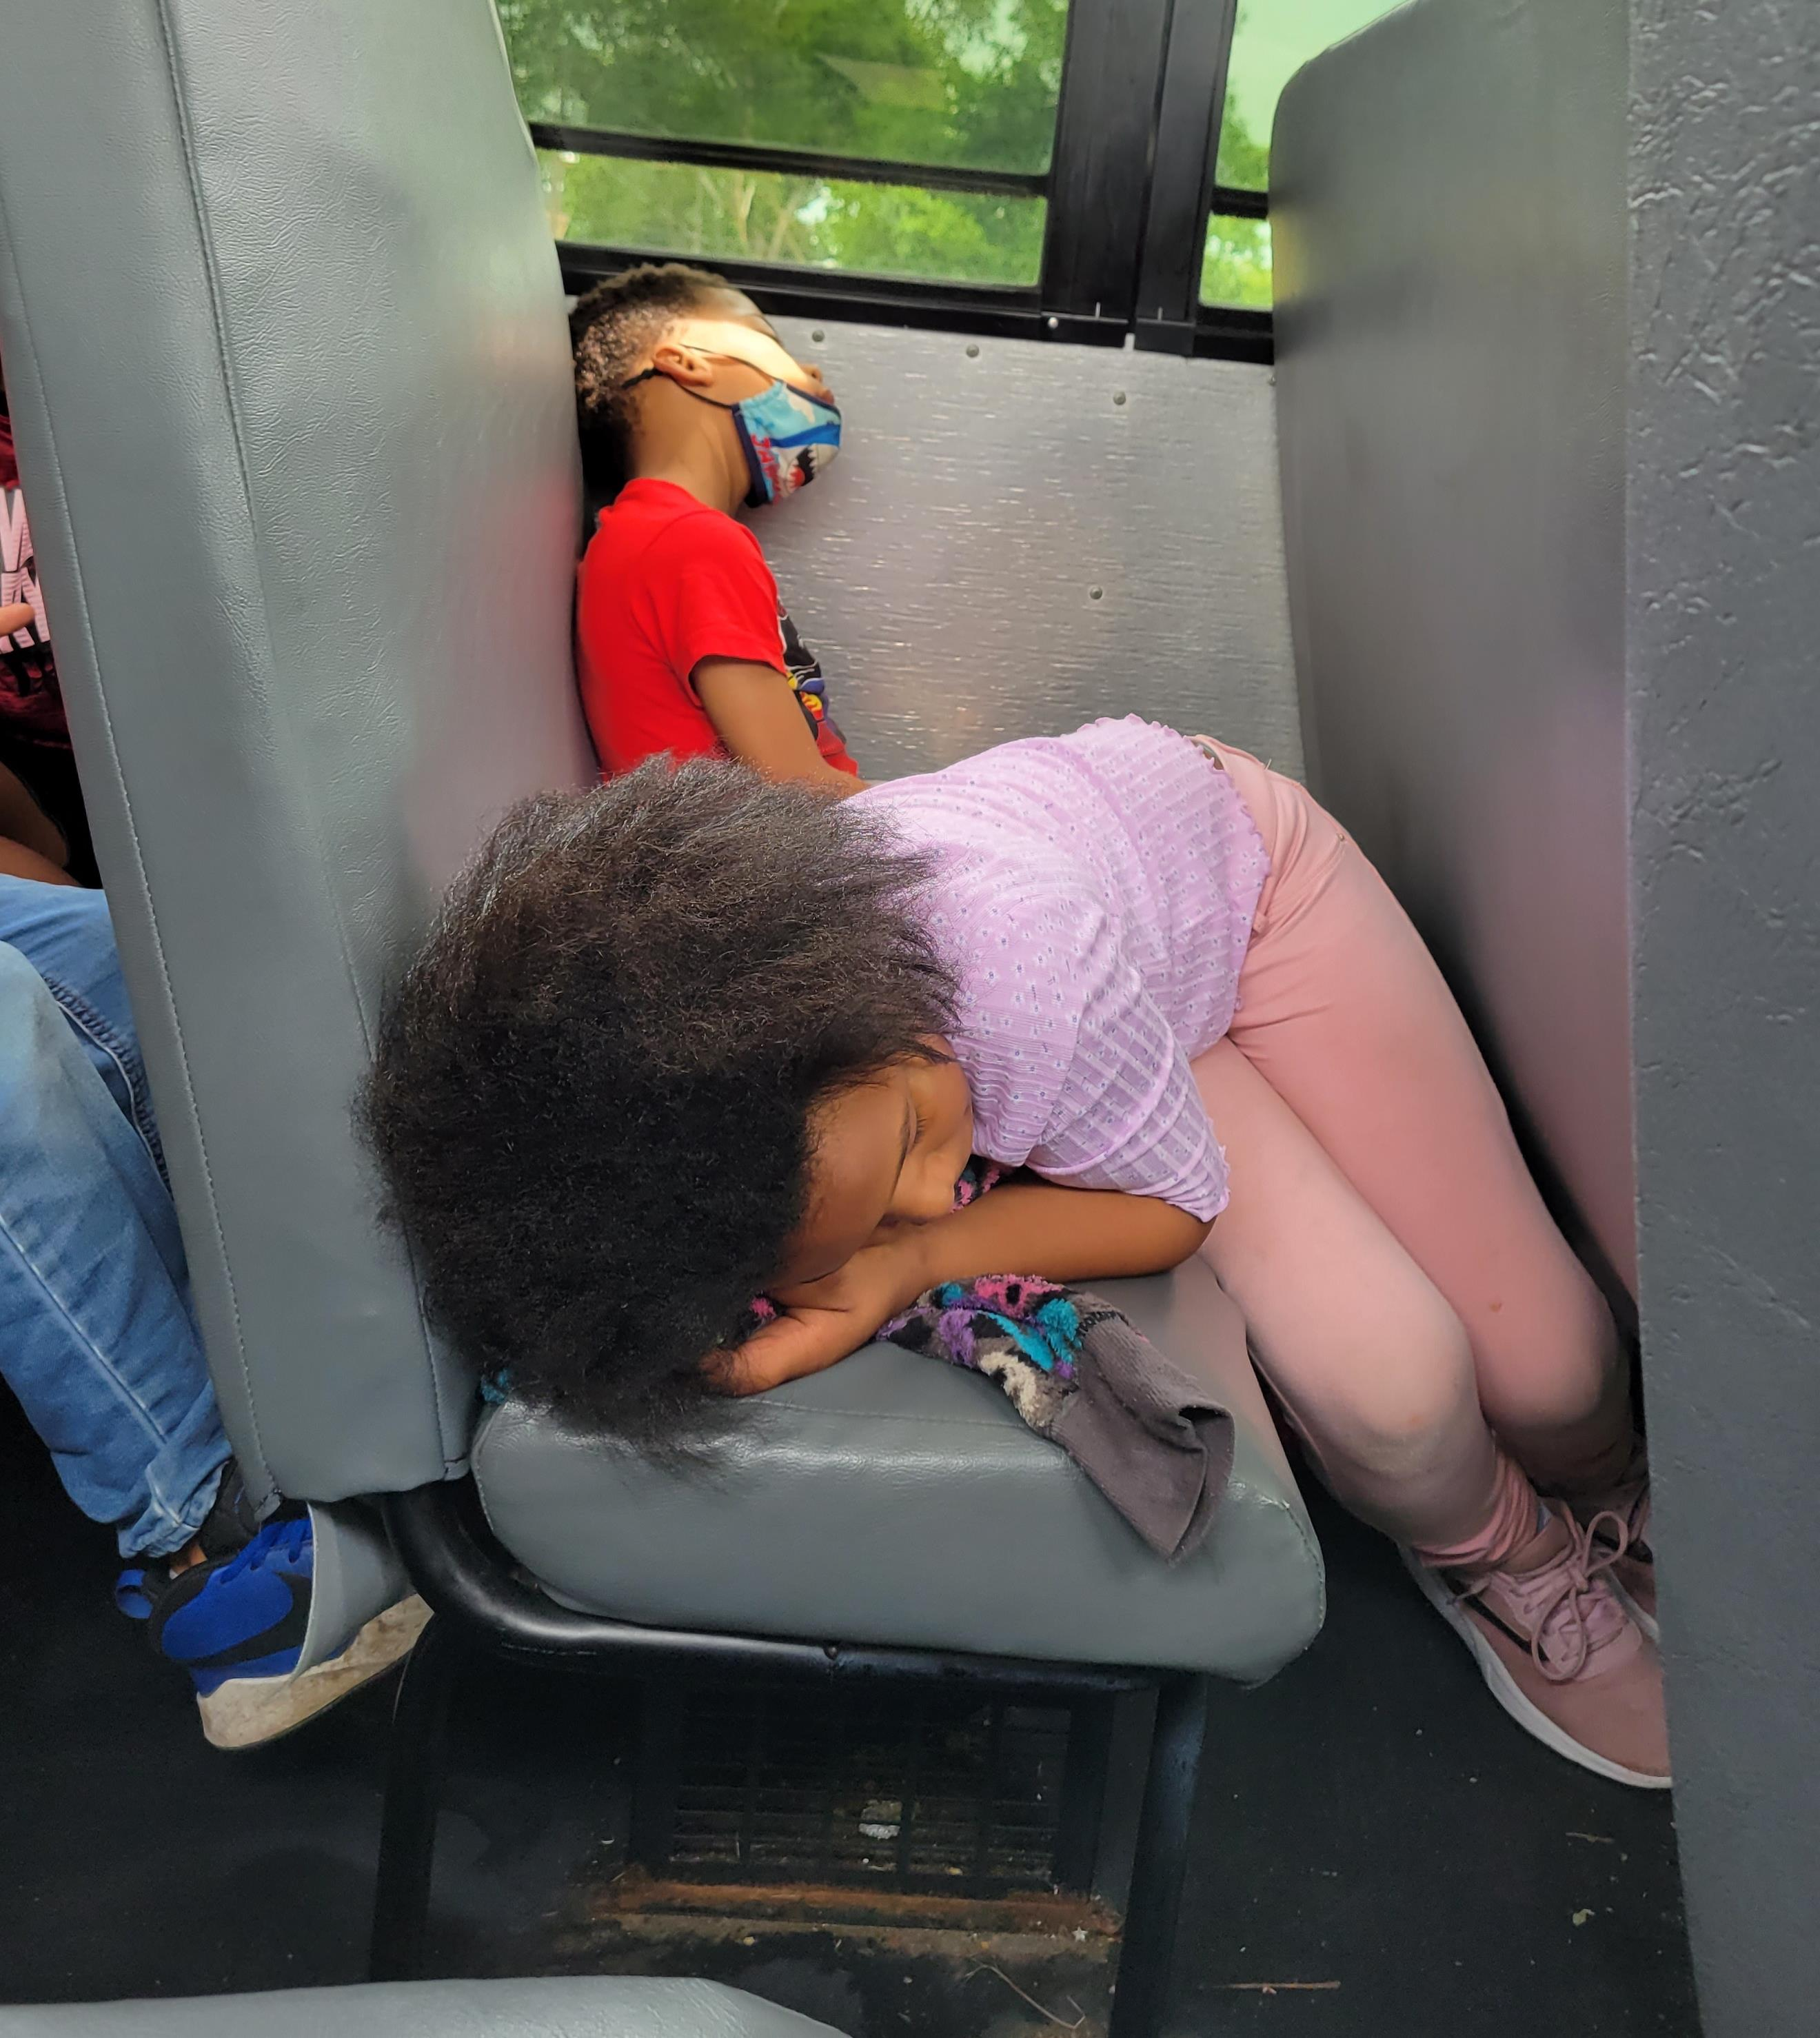 Students sleeping on the bus